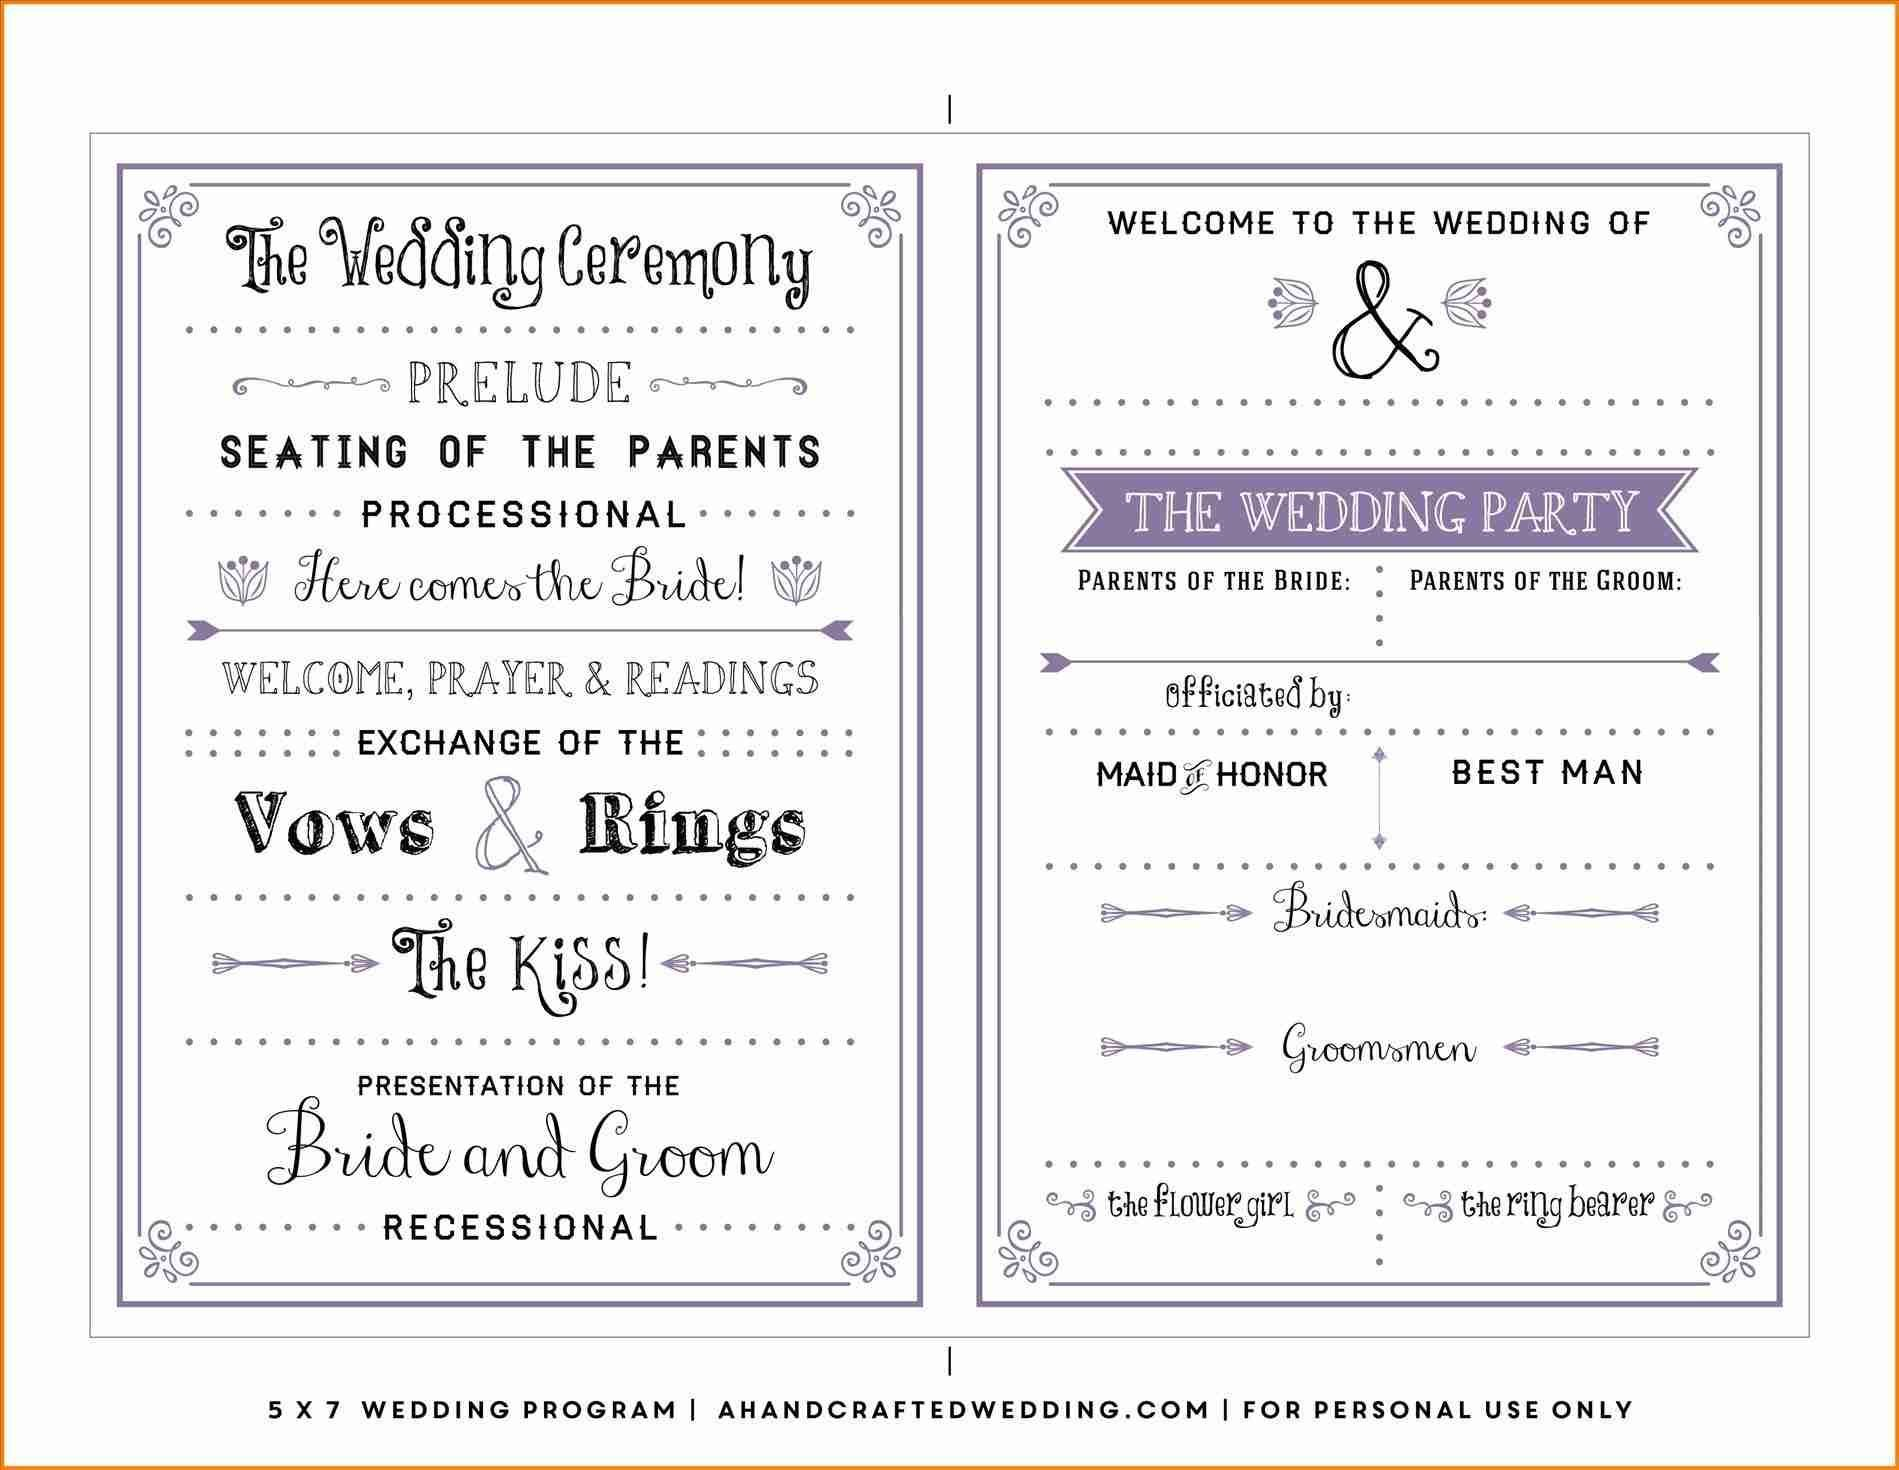 Elegant Microsoft Word Wedding Program Template 004 One Page Inside Wedding Seating Cha In 2020 With Images Wedding Programs Template Seating Chart Wedding Template Wedding Inside